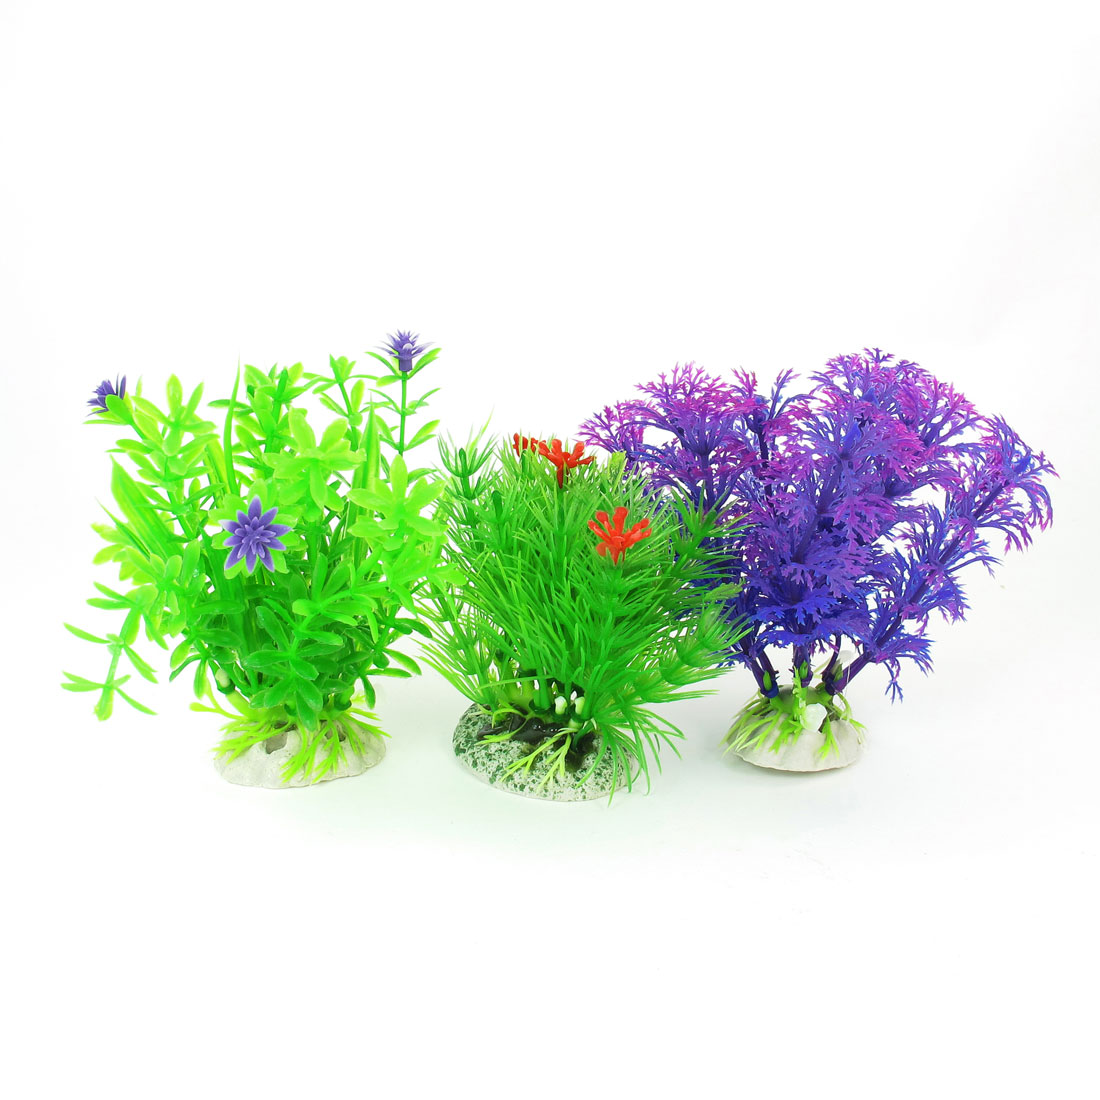 Voilet Blue Green Simulation Underwater Plants Grass for Fish Tank 3 Pcs